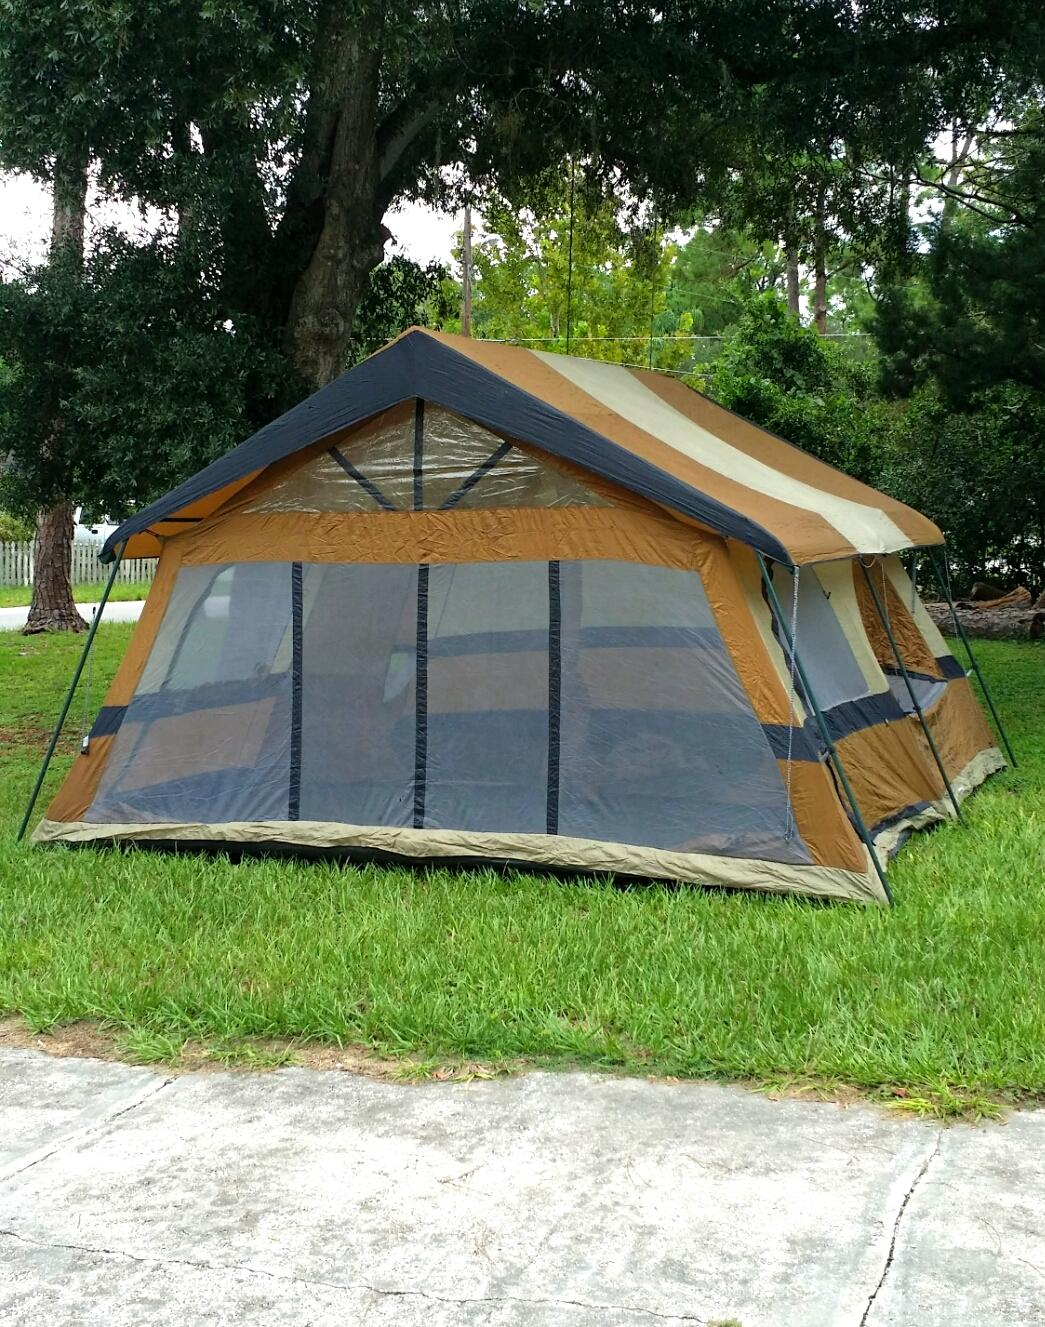 Find more Northwest Territory vacation Cottage Cabin Tent ...